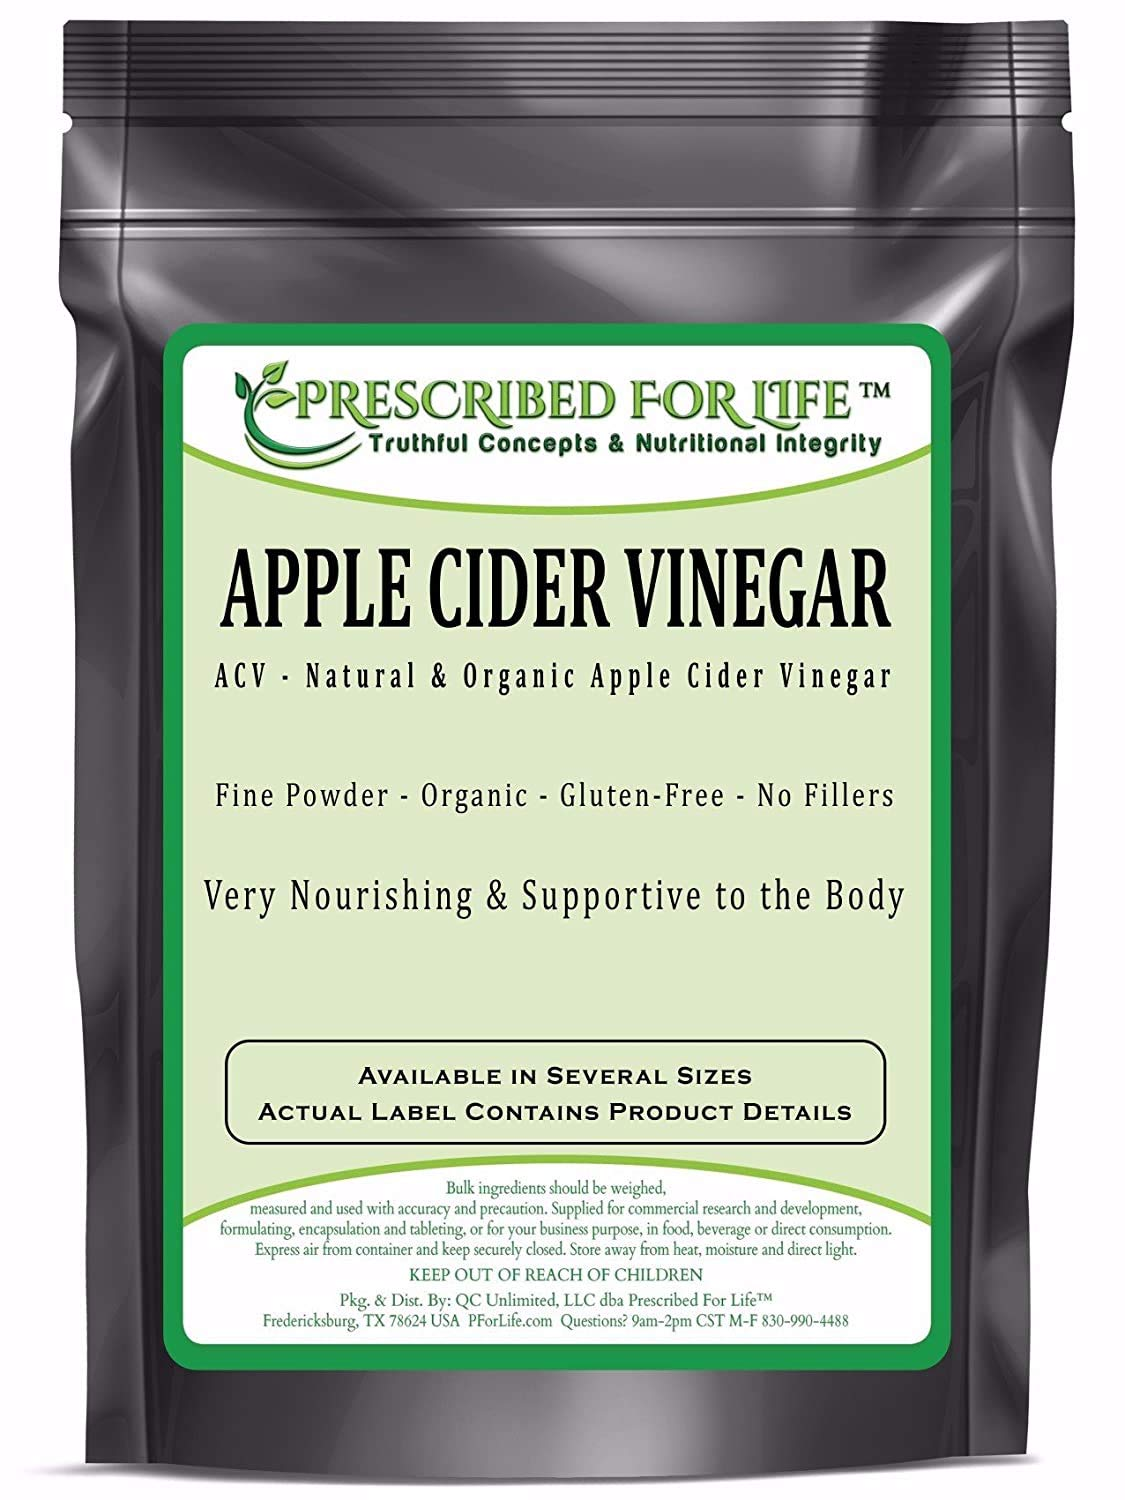 Apple Cider Vinegar - Organic Spray Dried ACV Powder - 5% Acetic Acid (Malus pumila - Mill.) (4 oz (113 g))